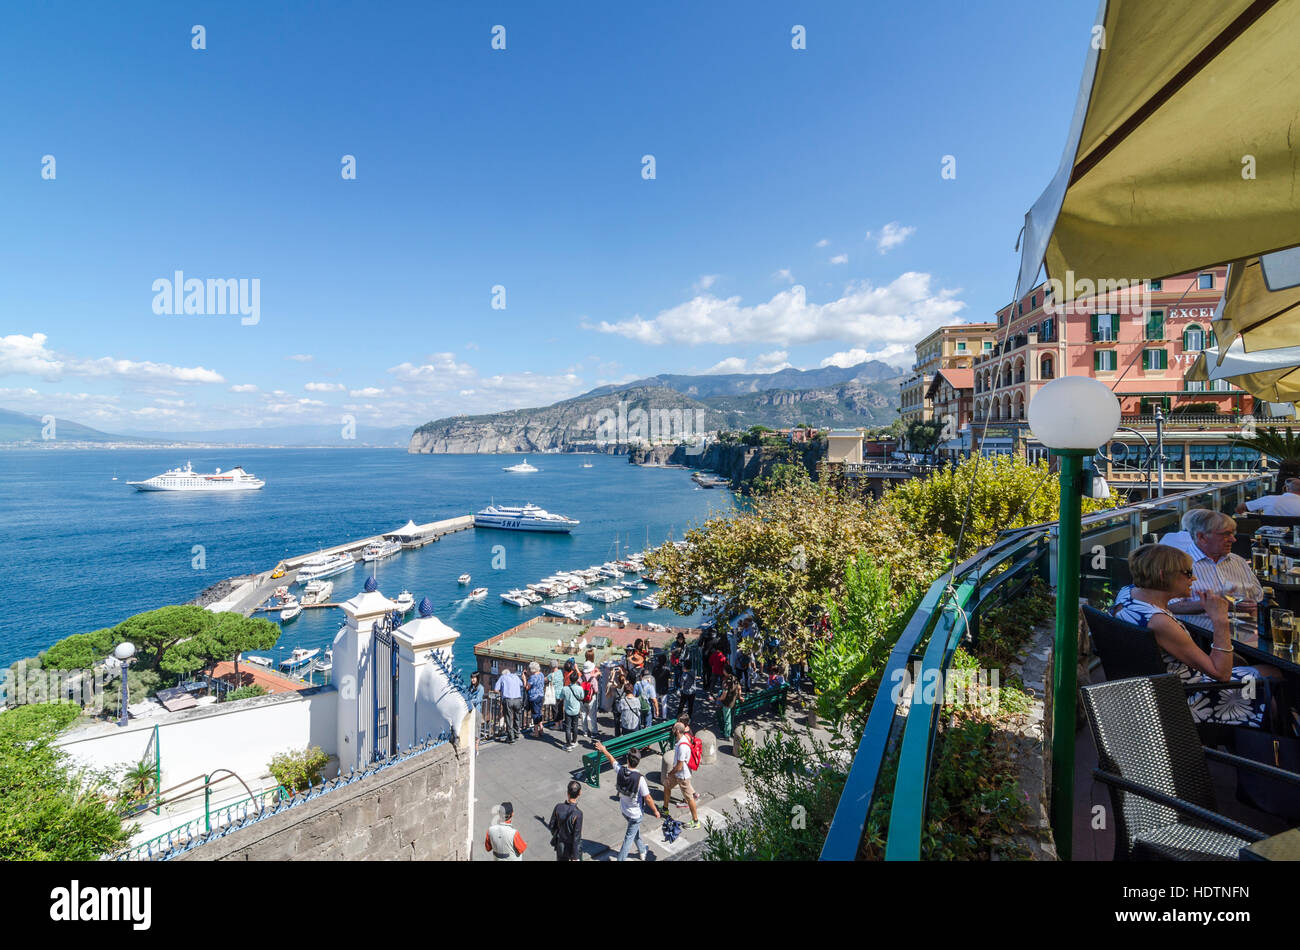 View over the Gulf of Naples, Porto di Sorrento and Marina Piccola from Sorrento, Italy - Stock Image